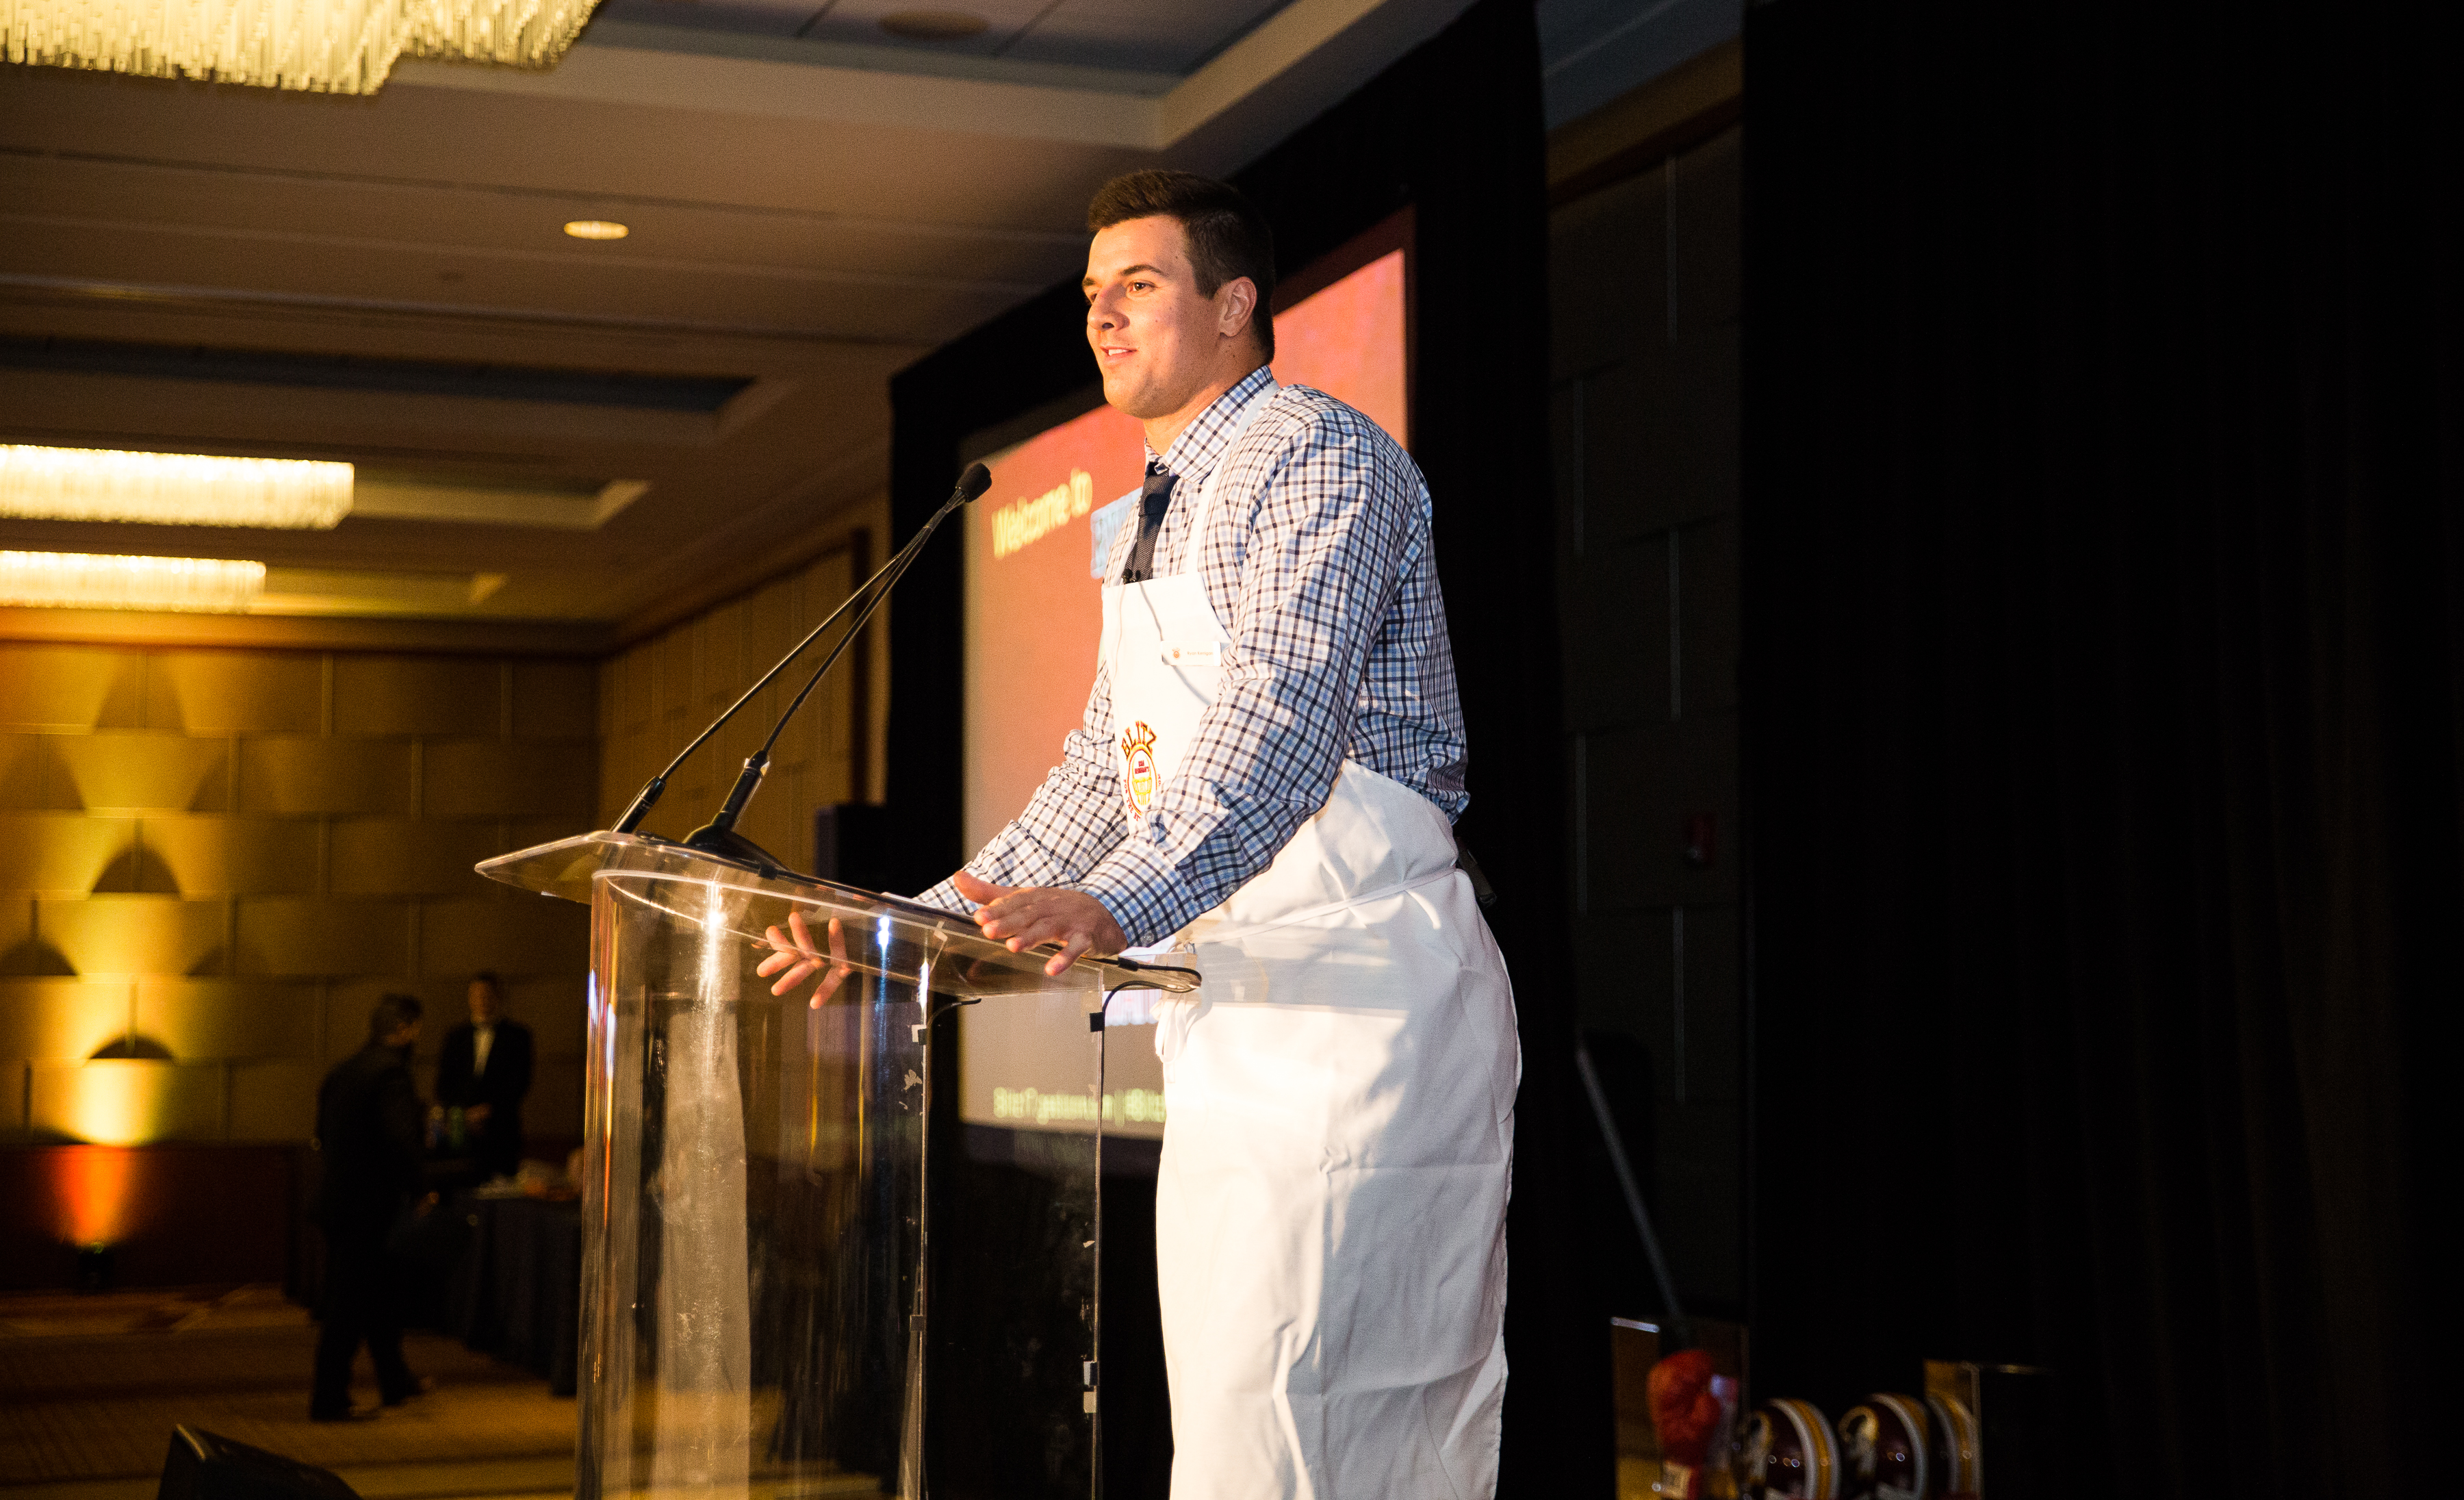 Have you ever wondered what you would do if you saw your favorite athlete at dinner? Well for 240 lucky guests at the Grand Hyatt Washington, they not only saw six Redskins at dinner, but were served their dinner by these apron-clad players. As a benefit for Ryan Kerrigan's Blitz for the Better Foundation, Josh Norman, Matt Ioannidis, Nick Sundberg, Chris Carter and Anthony Lanier joined their teammate and traded in their uniforms for aprons for one night of servitude to raise more than $210,000 for programs like Kerrigan's Korners in pediatric hospitals. In addition to mingling with their favorite athletes at the 5th Annual Celebrity Waiter Night, guests were treated to a three-course dinner accompanied by fine wine. During the program, Kerrigan also announced the launch of the Positive Impact Fund, which will provide financial help to families severely/chronically ill-children or special-needs children at MedStar Georgetown University Hospital. (Image: Courtesy Blitz for the Better Foundation)